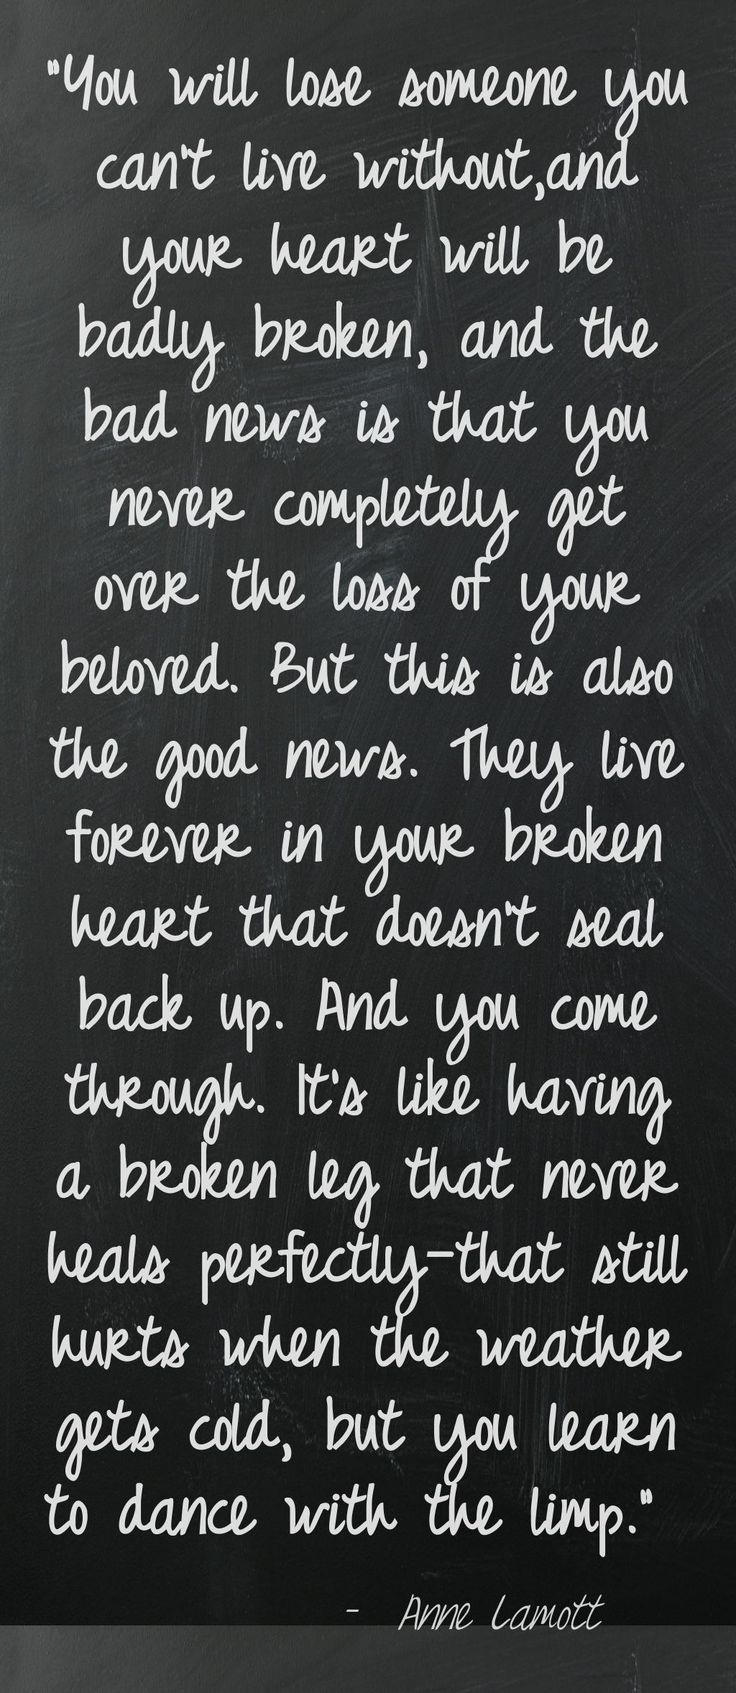 Love, love this quote and love some more!